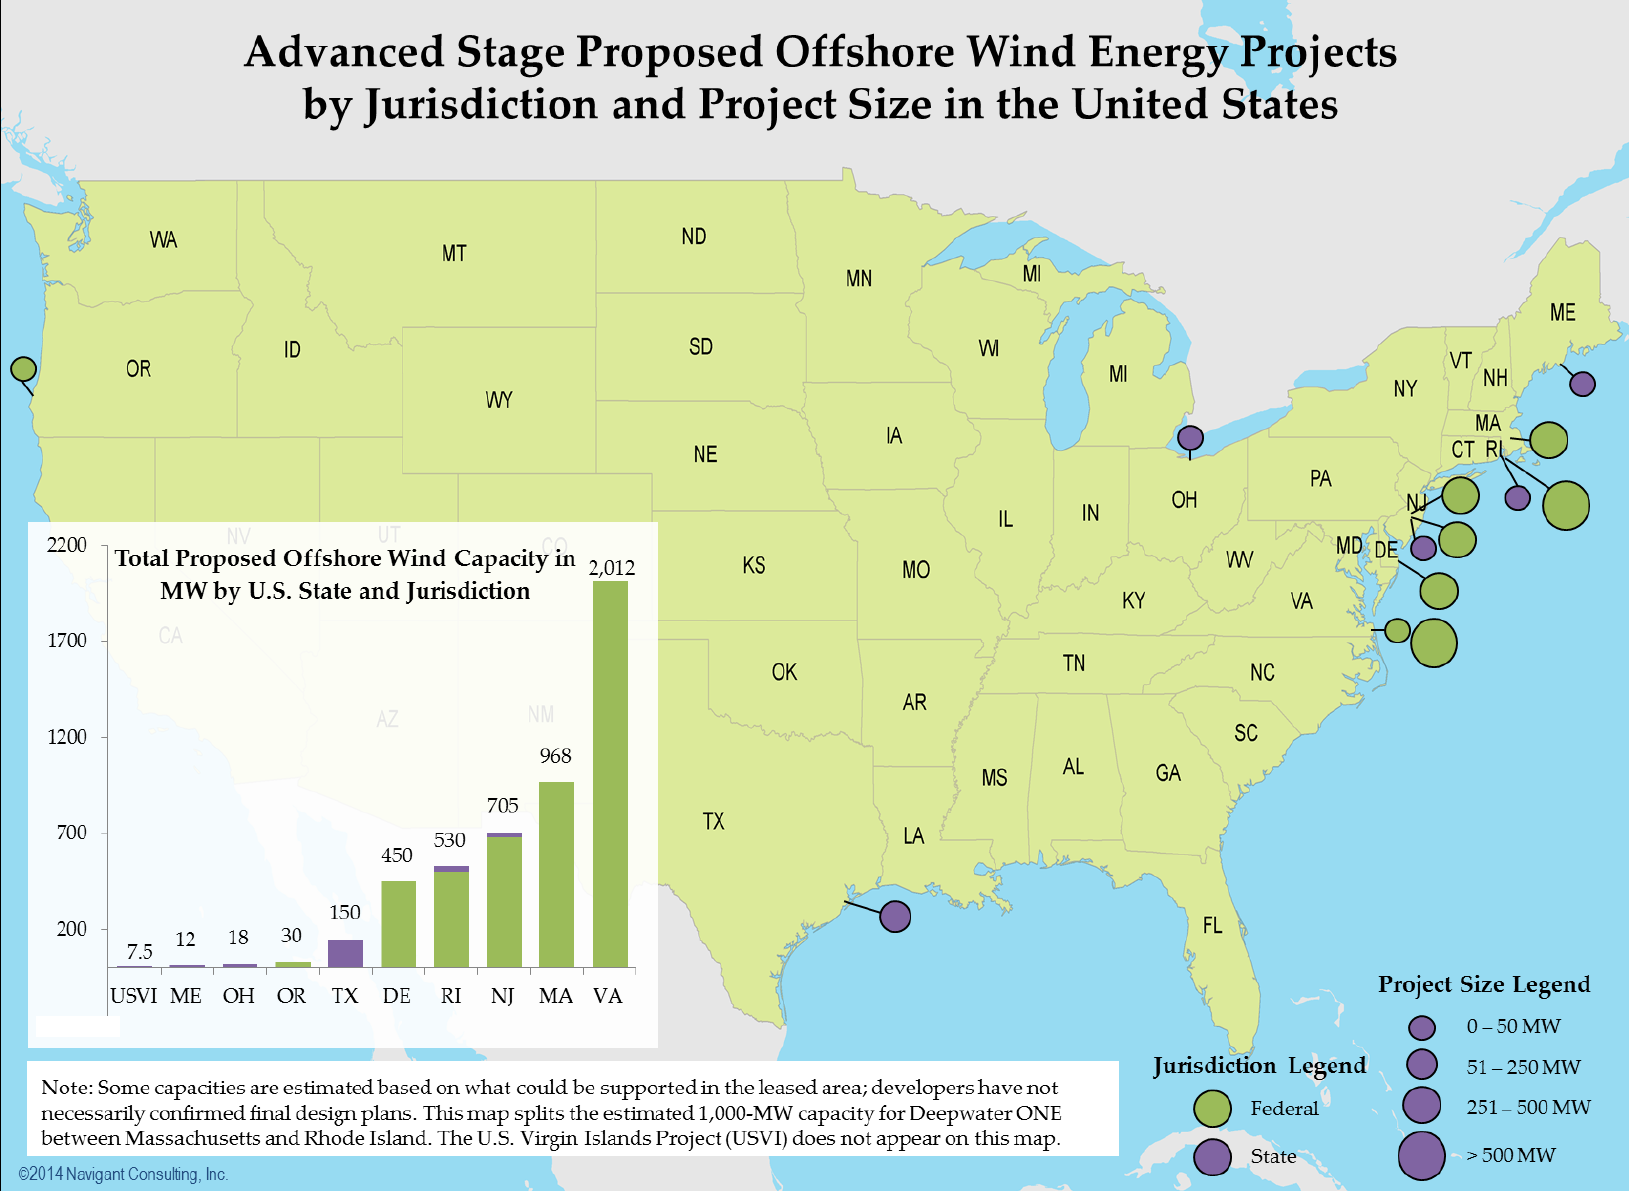 Wind Energy My Florida Home Wiring Diagram Likewise Power Plant Schematic Figure 9 Proposed Us Offshore Projects In Advanced Development Stages By Jurisdiction And